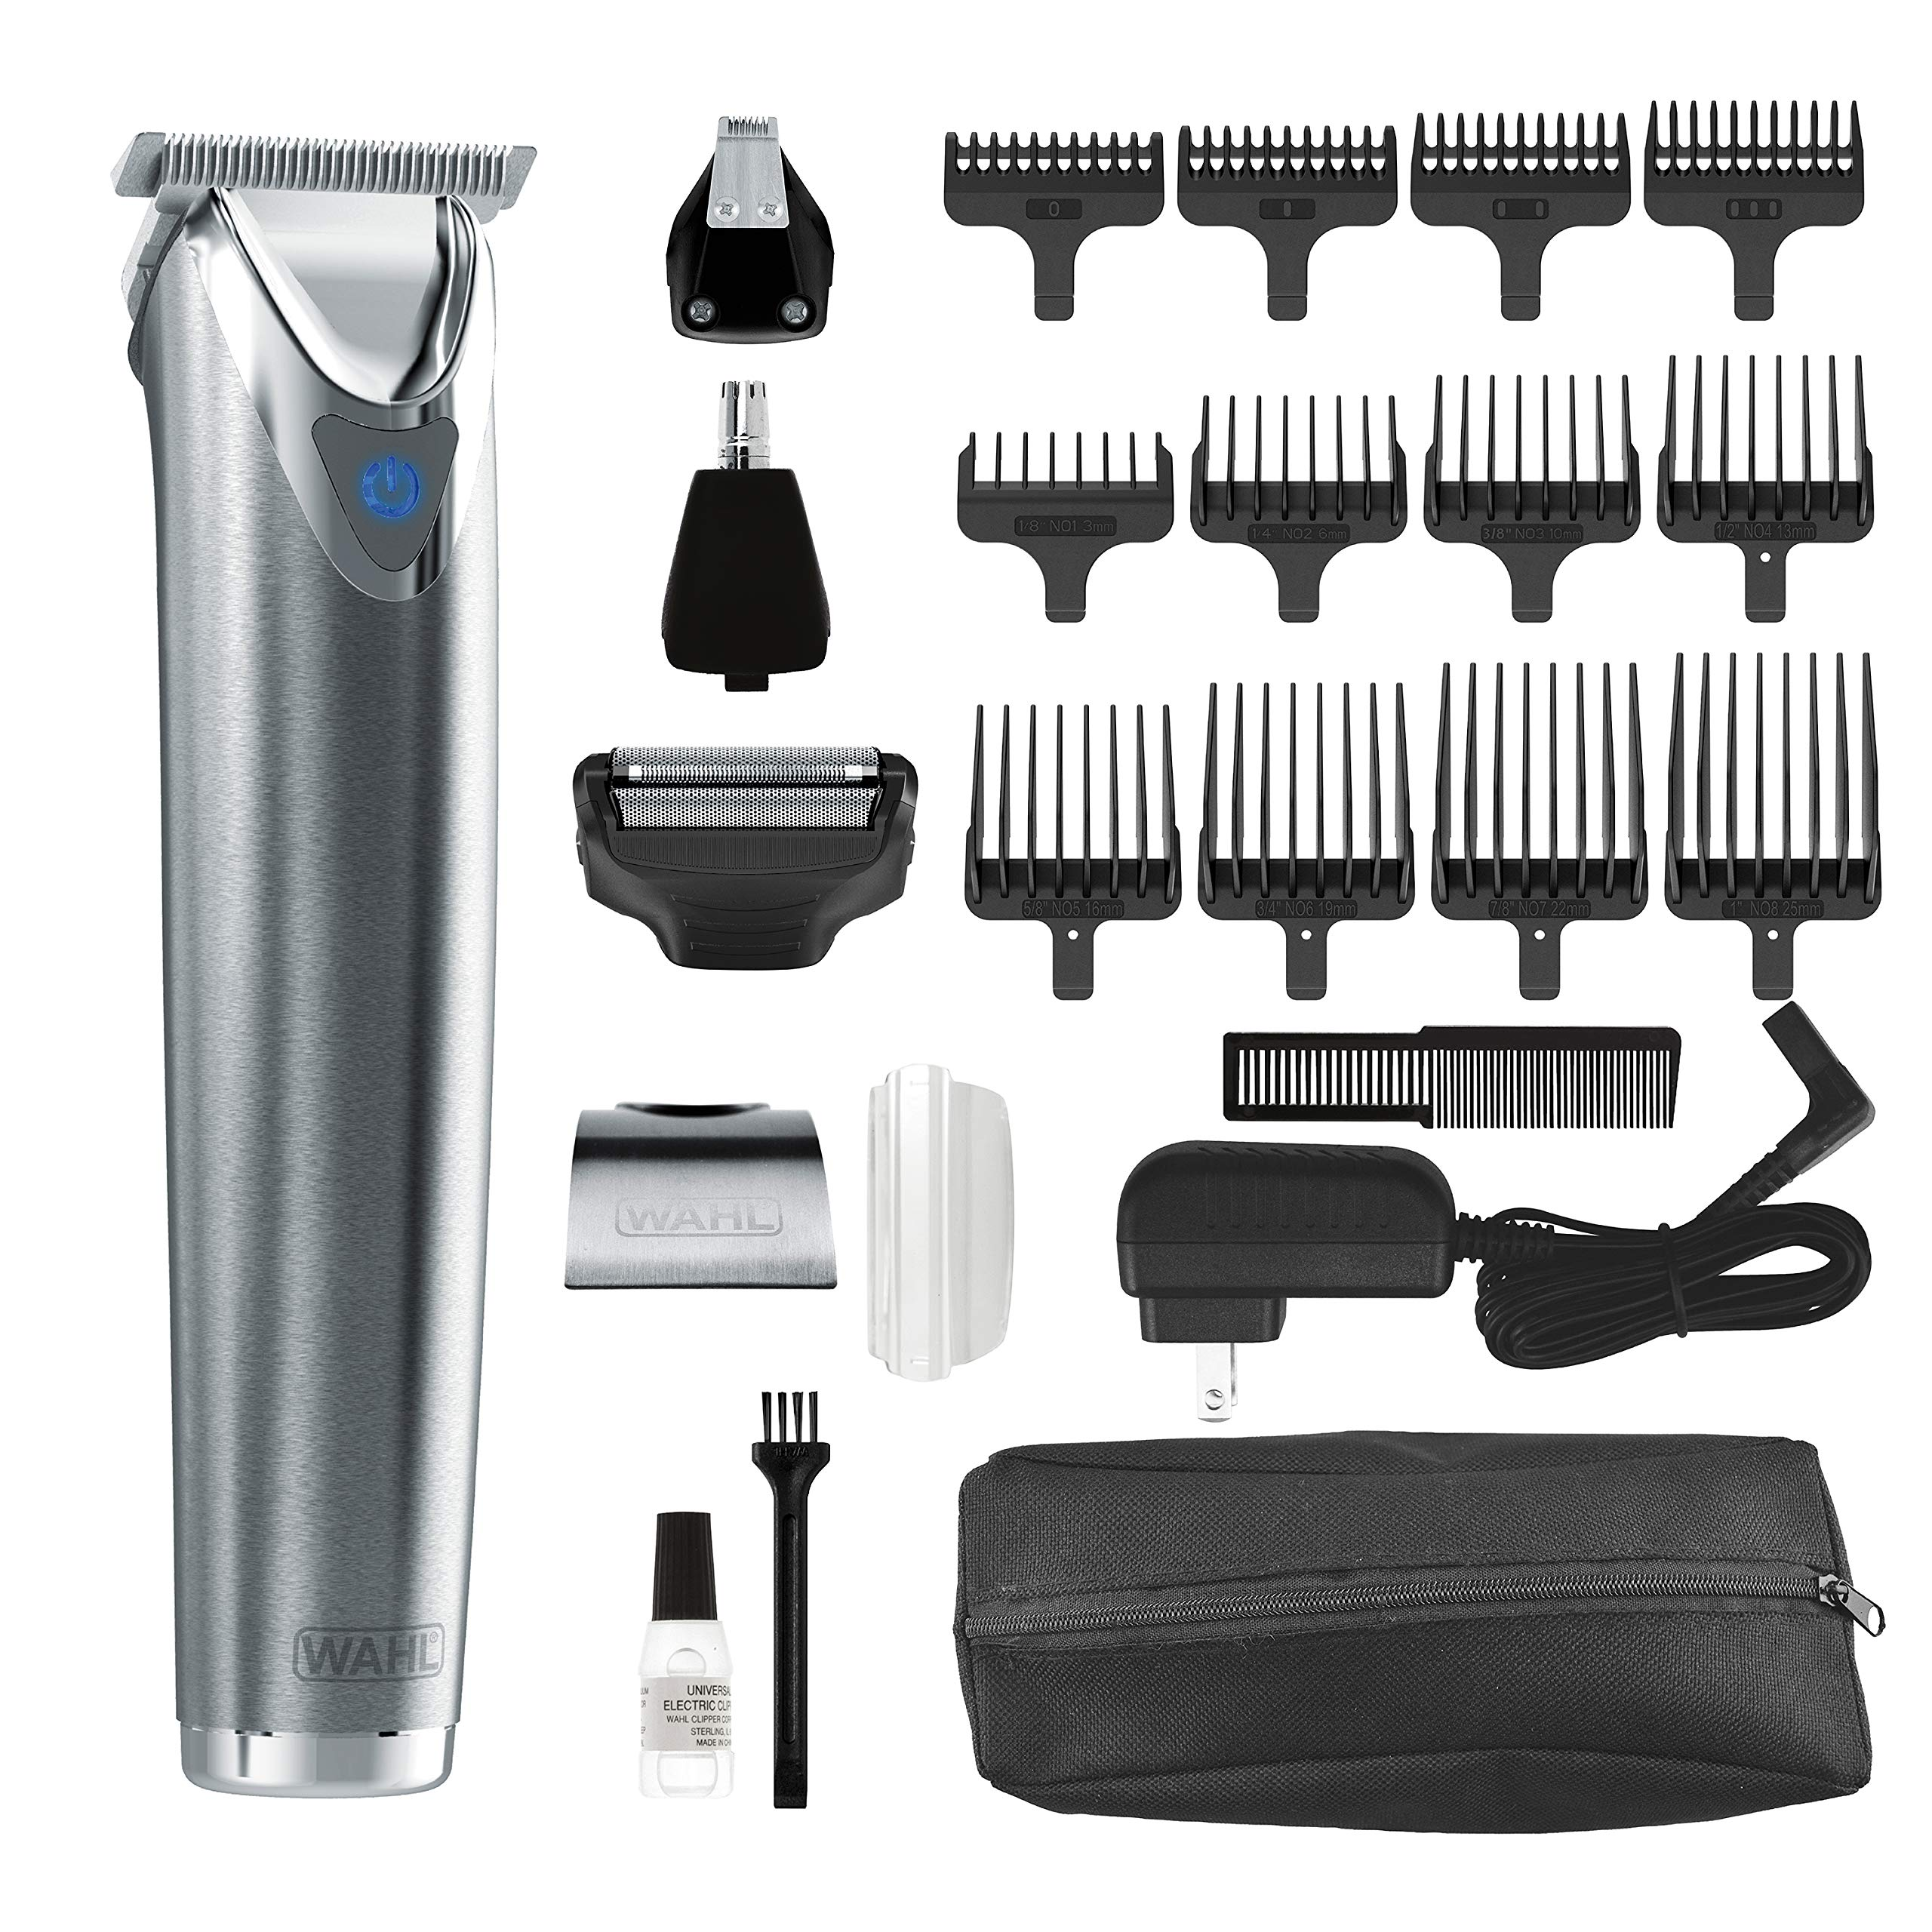 Stainless No 9864SS Cordless Rechargeable Grooming